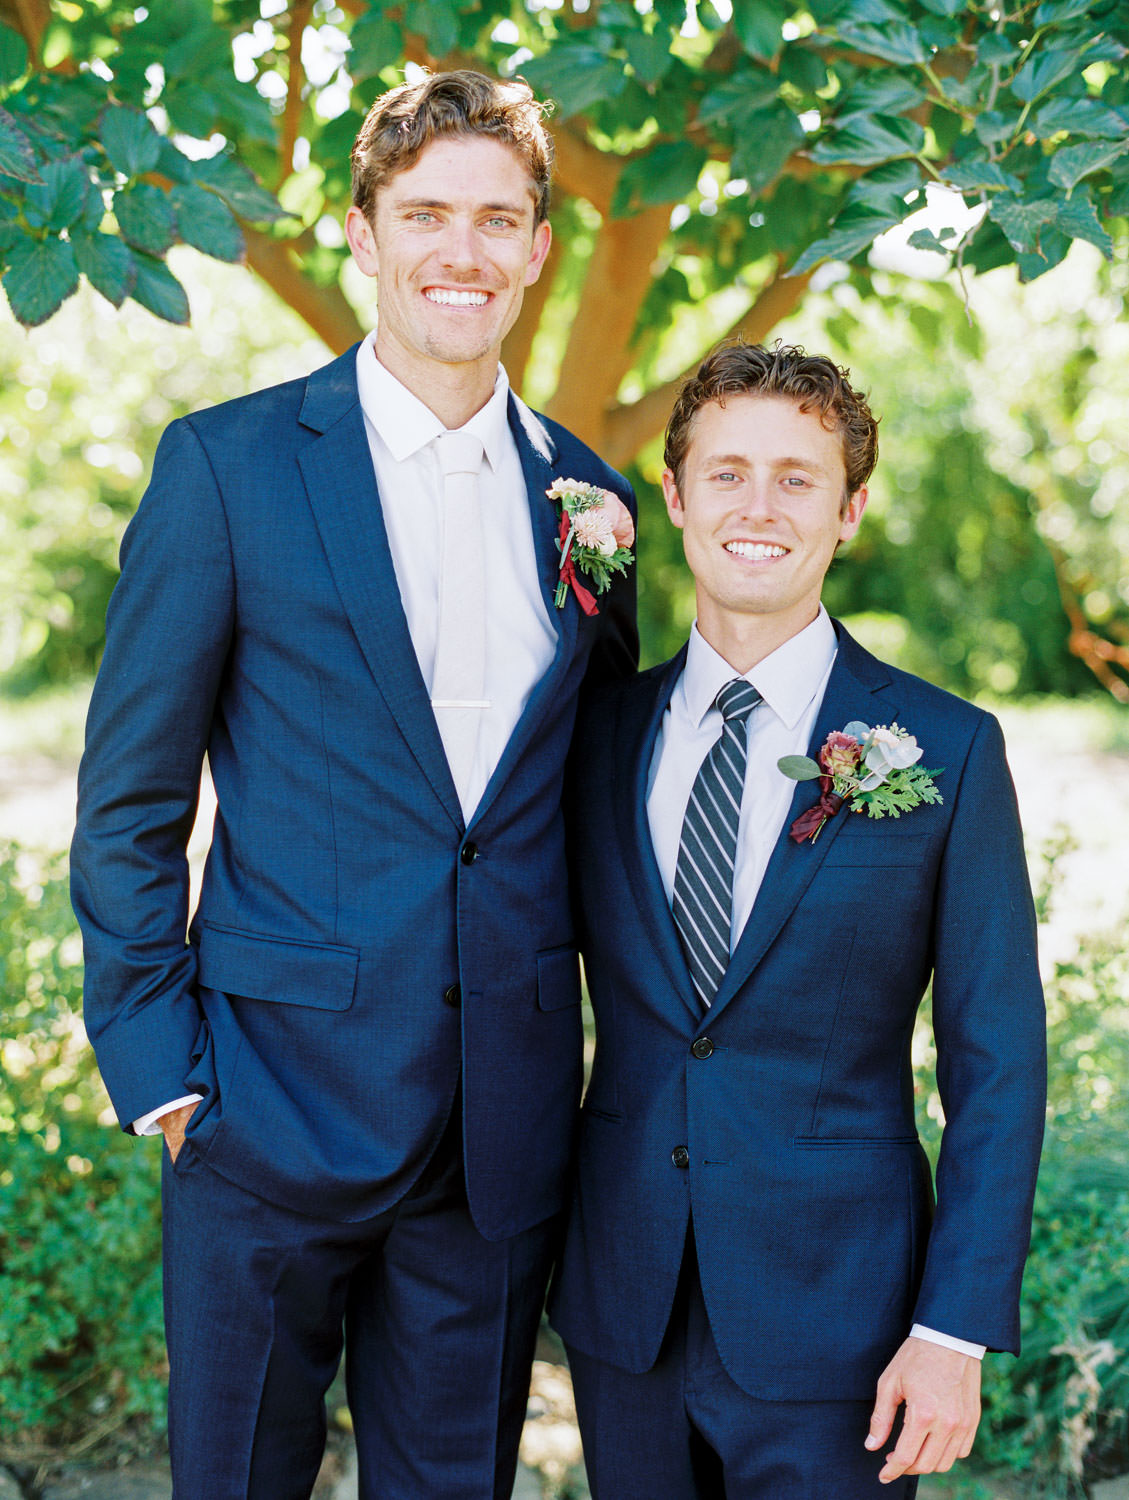 Groom and groomsmen in navy linen suits with ivory tie and large boutonniere with peach and green flowers. Cavin Elizabeth Photography.